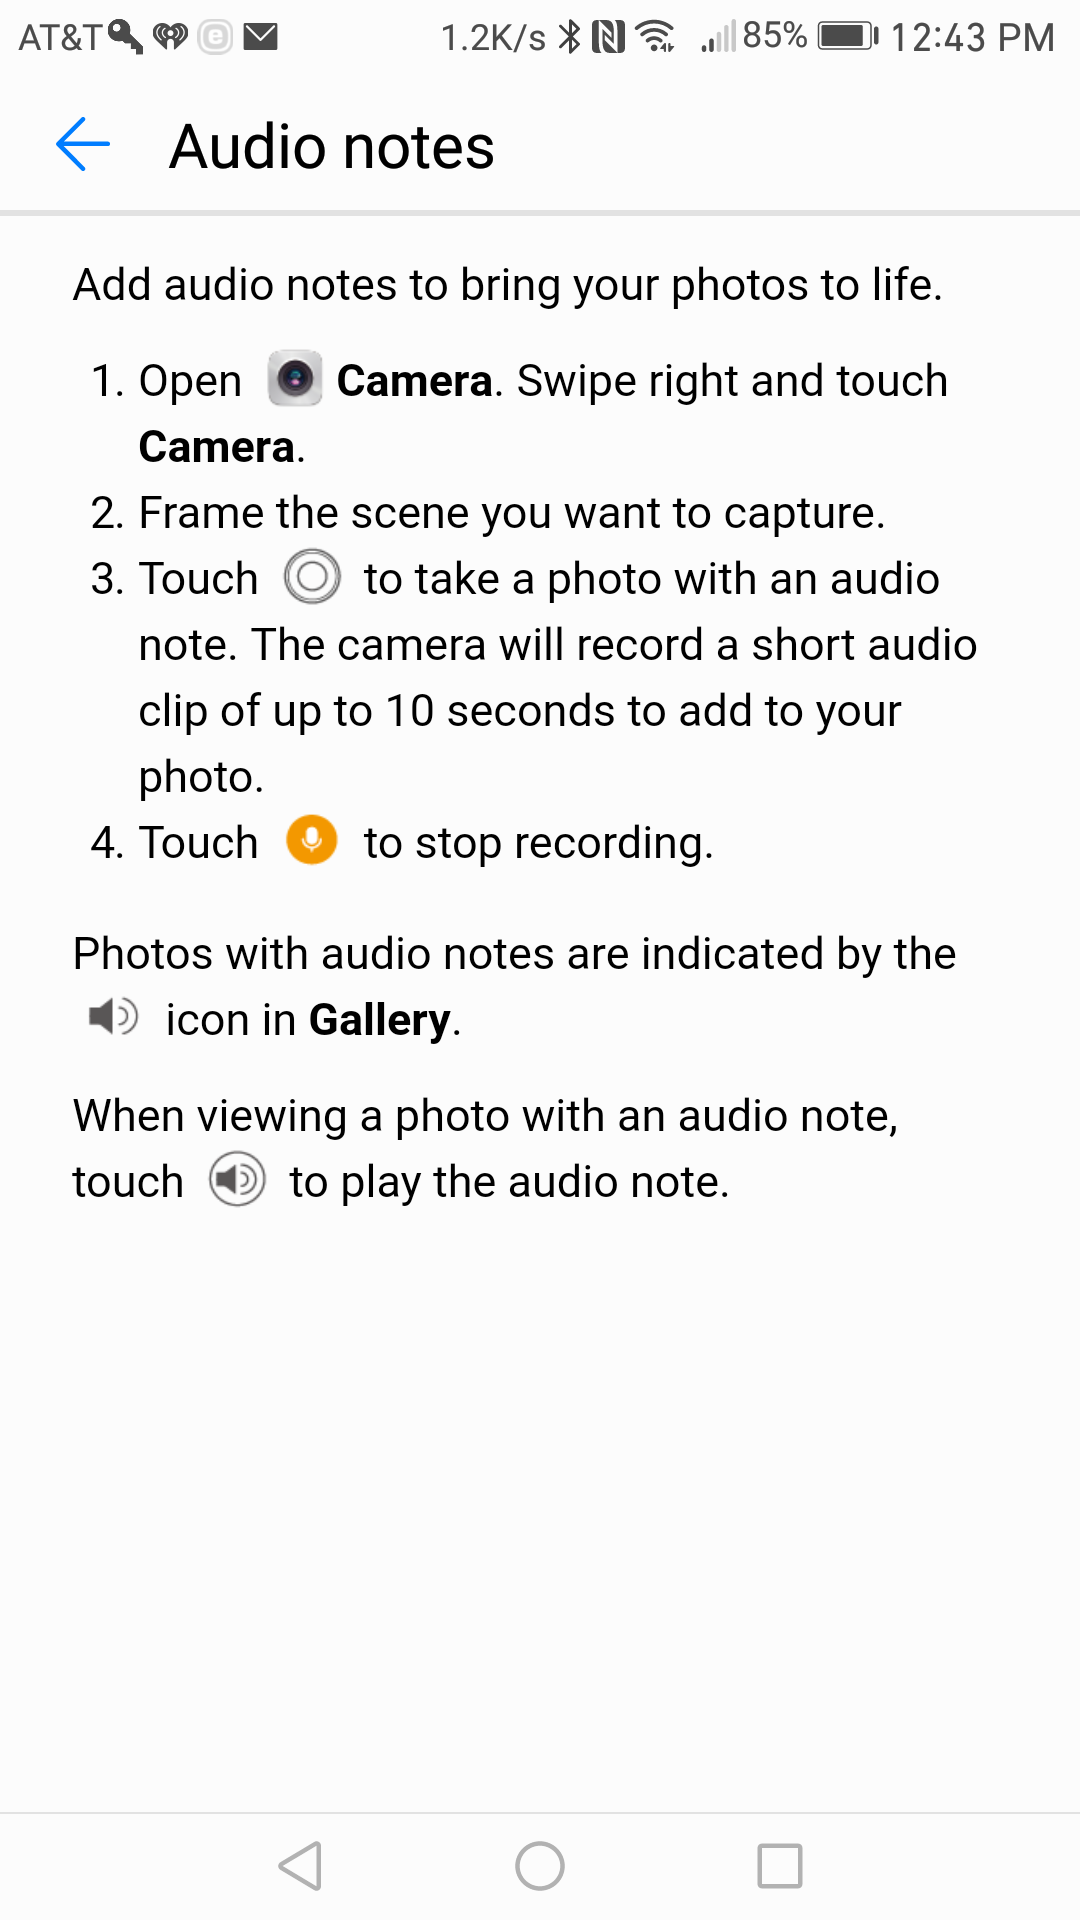 Instructions on adding Audio Notes to your pictures